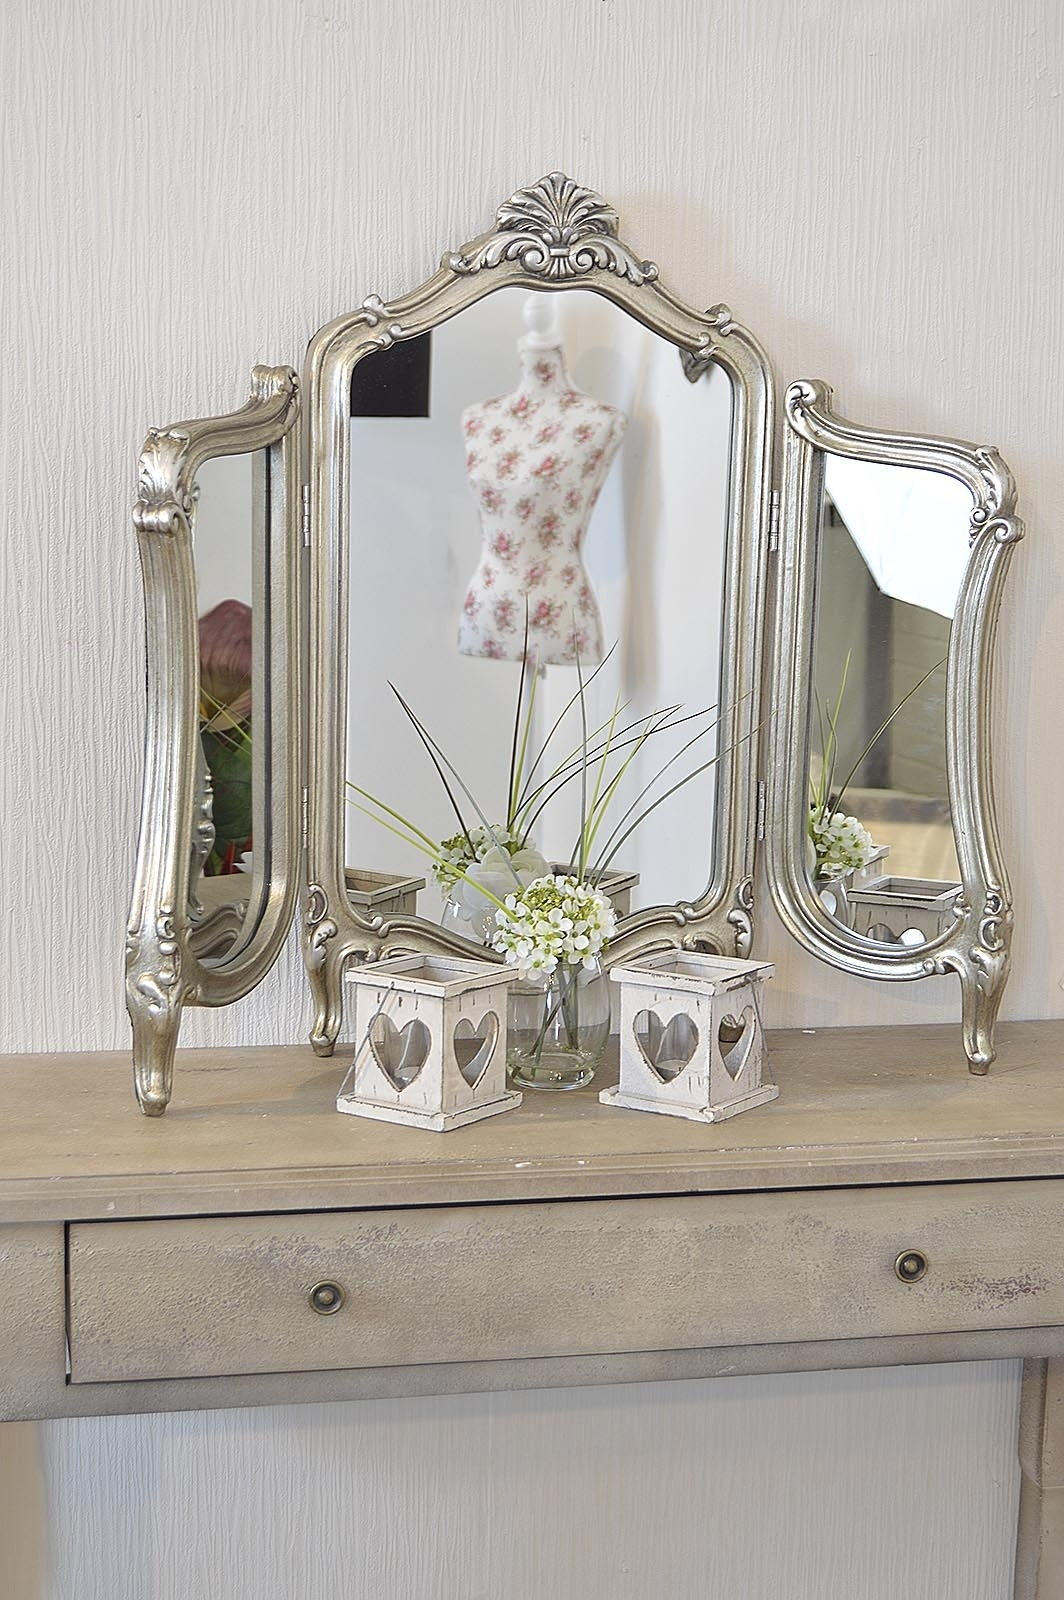 Stunning Antique Design Free Standing Dressing Table Mirror M315 Intended For Standing Dressing Mirror (View 9 of 15)